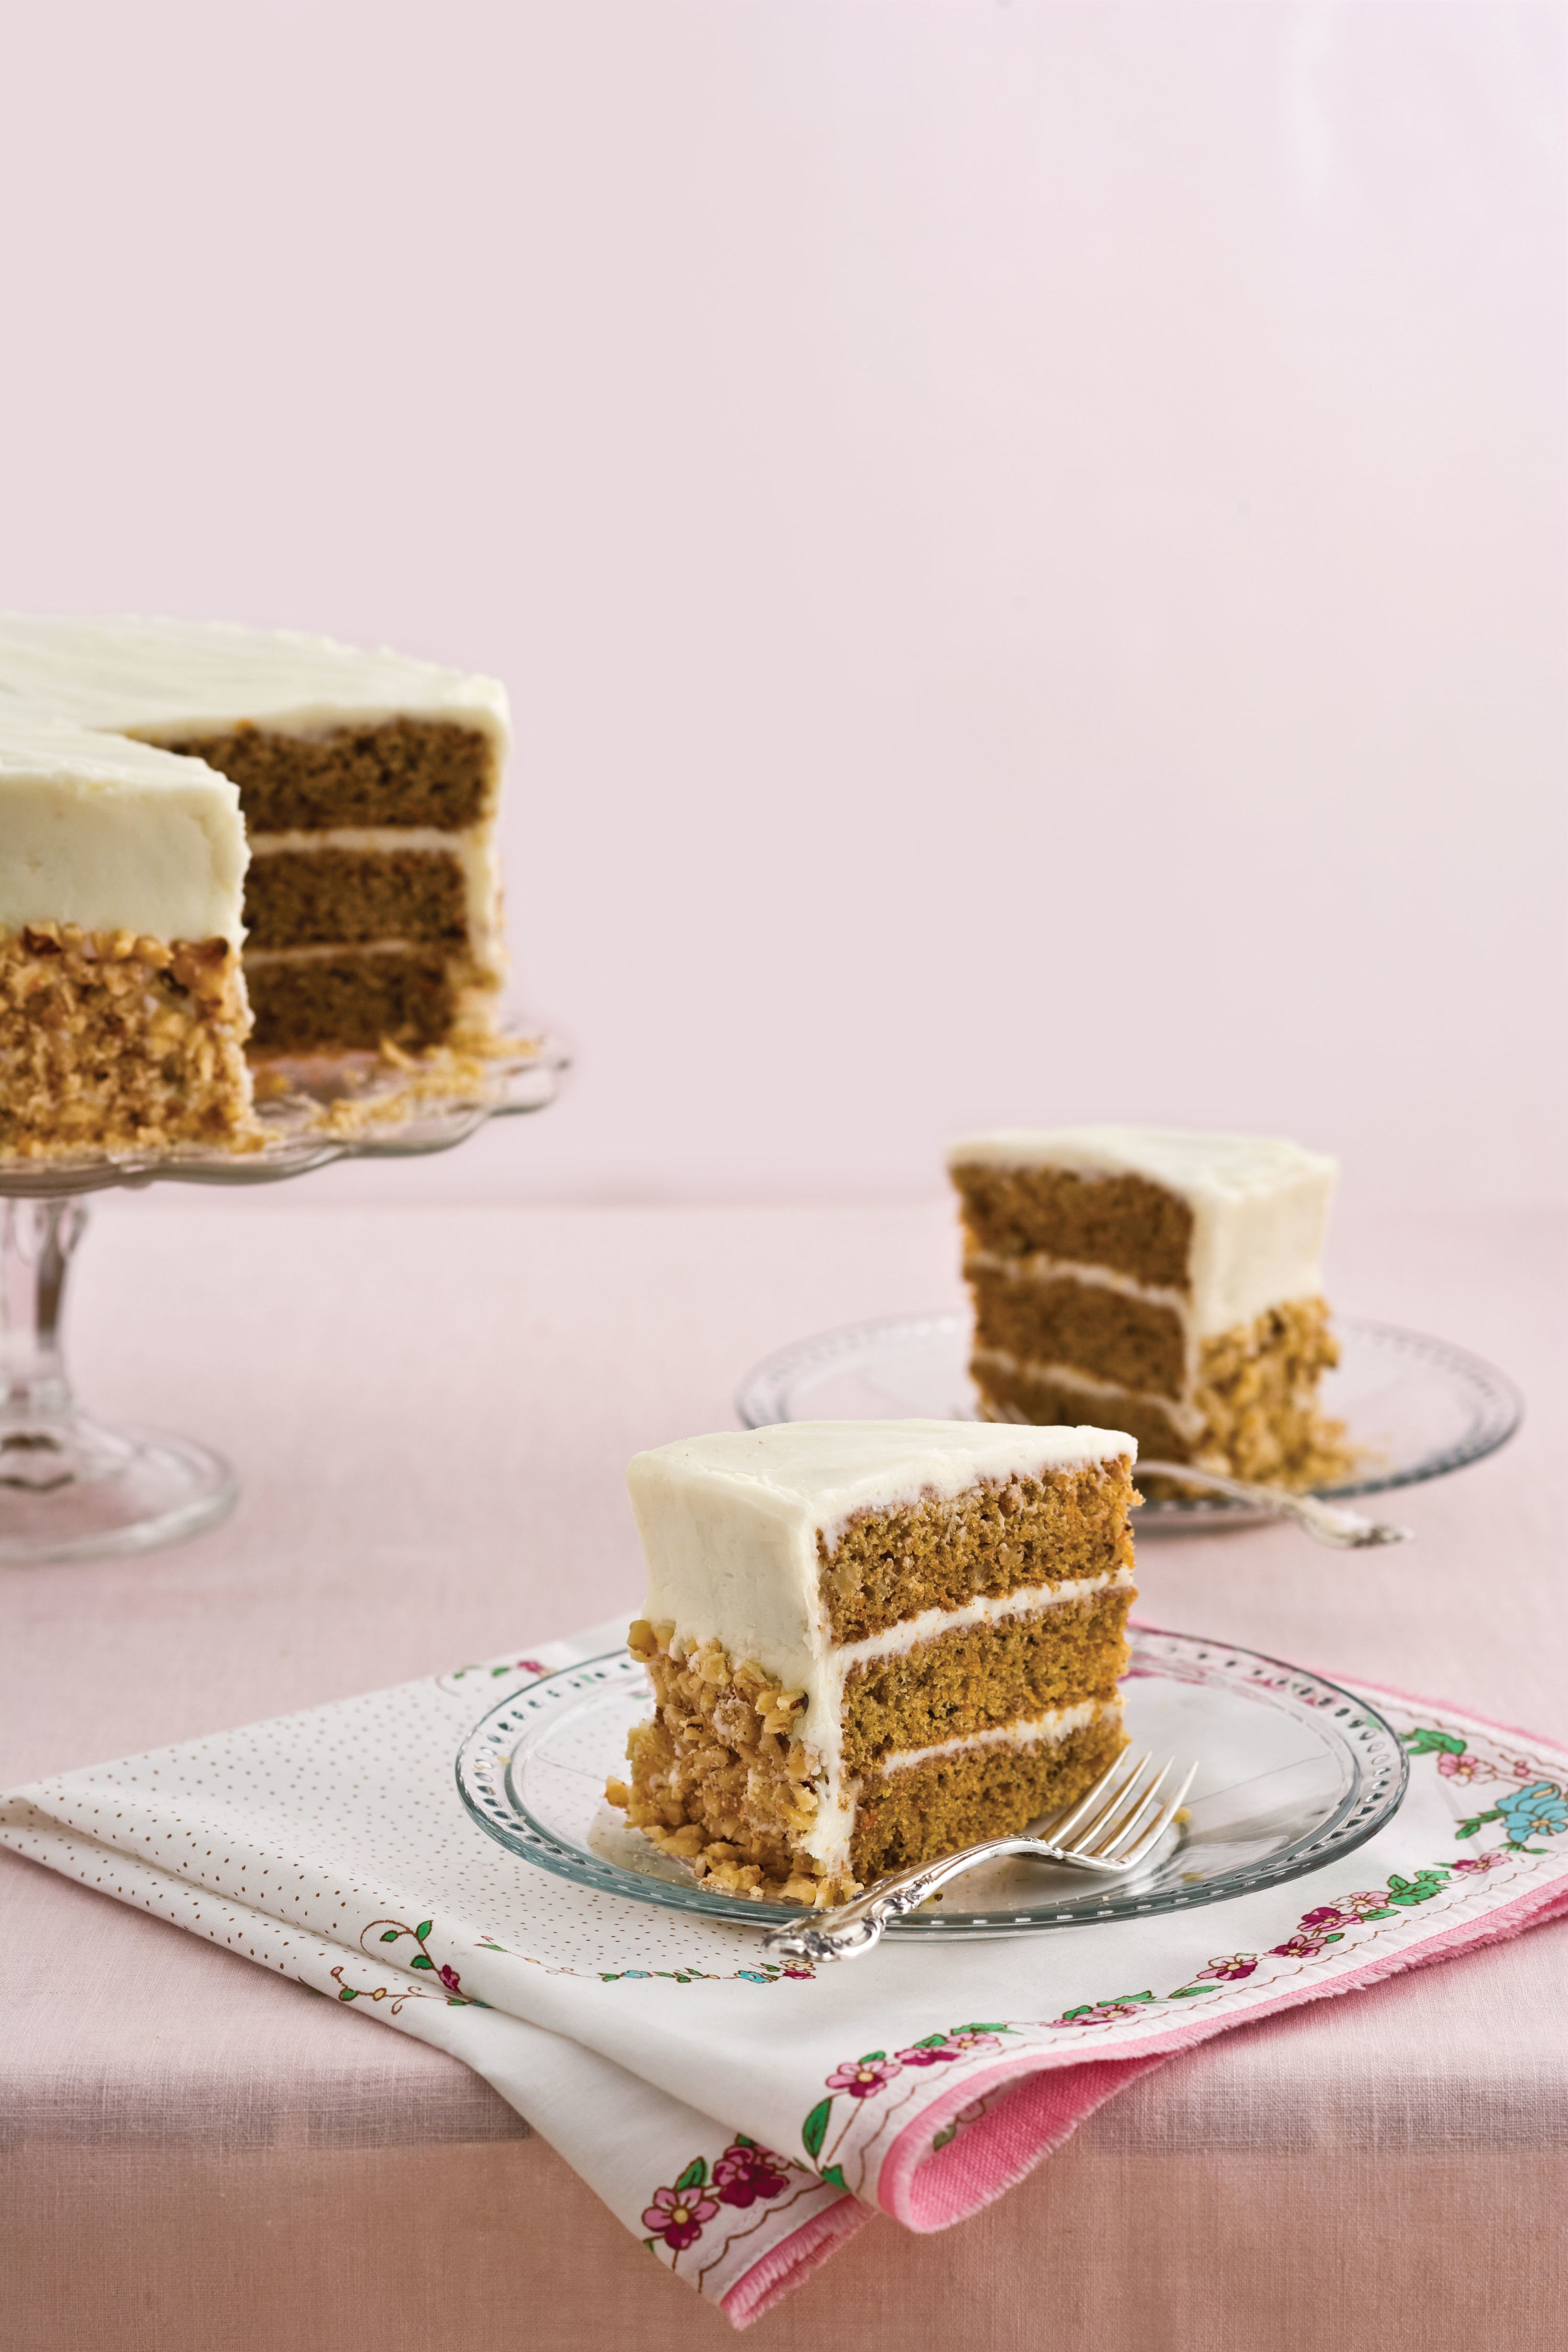 Mama Dip's Carrot Cake Is a Cake For All Seasons